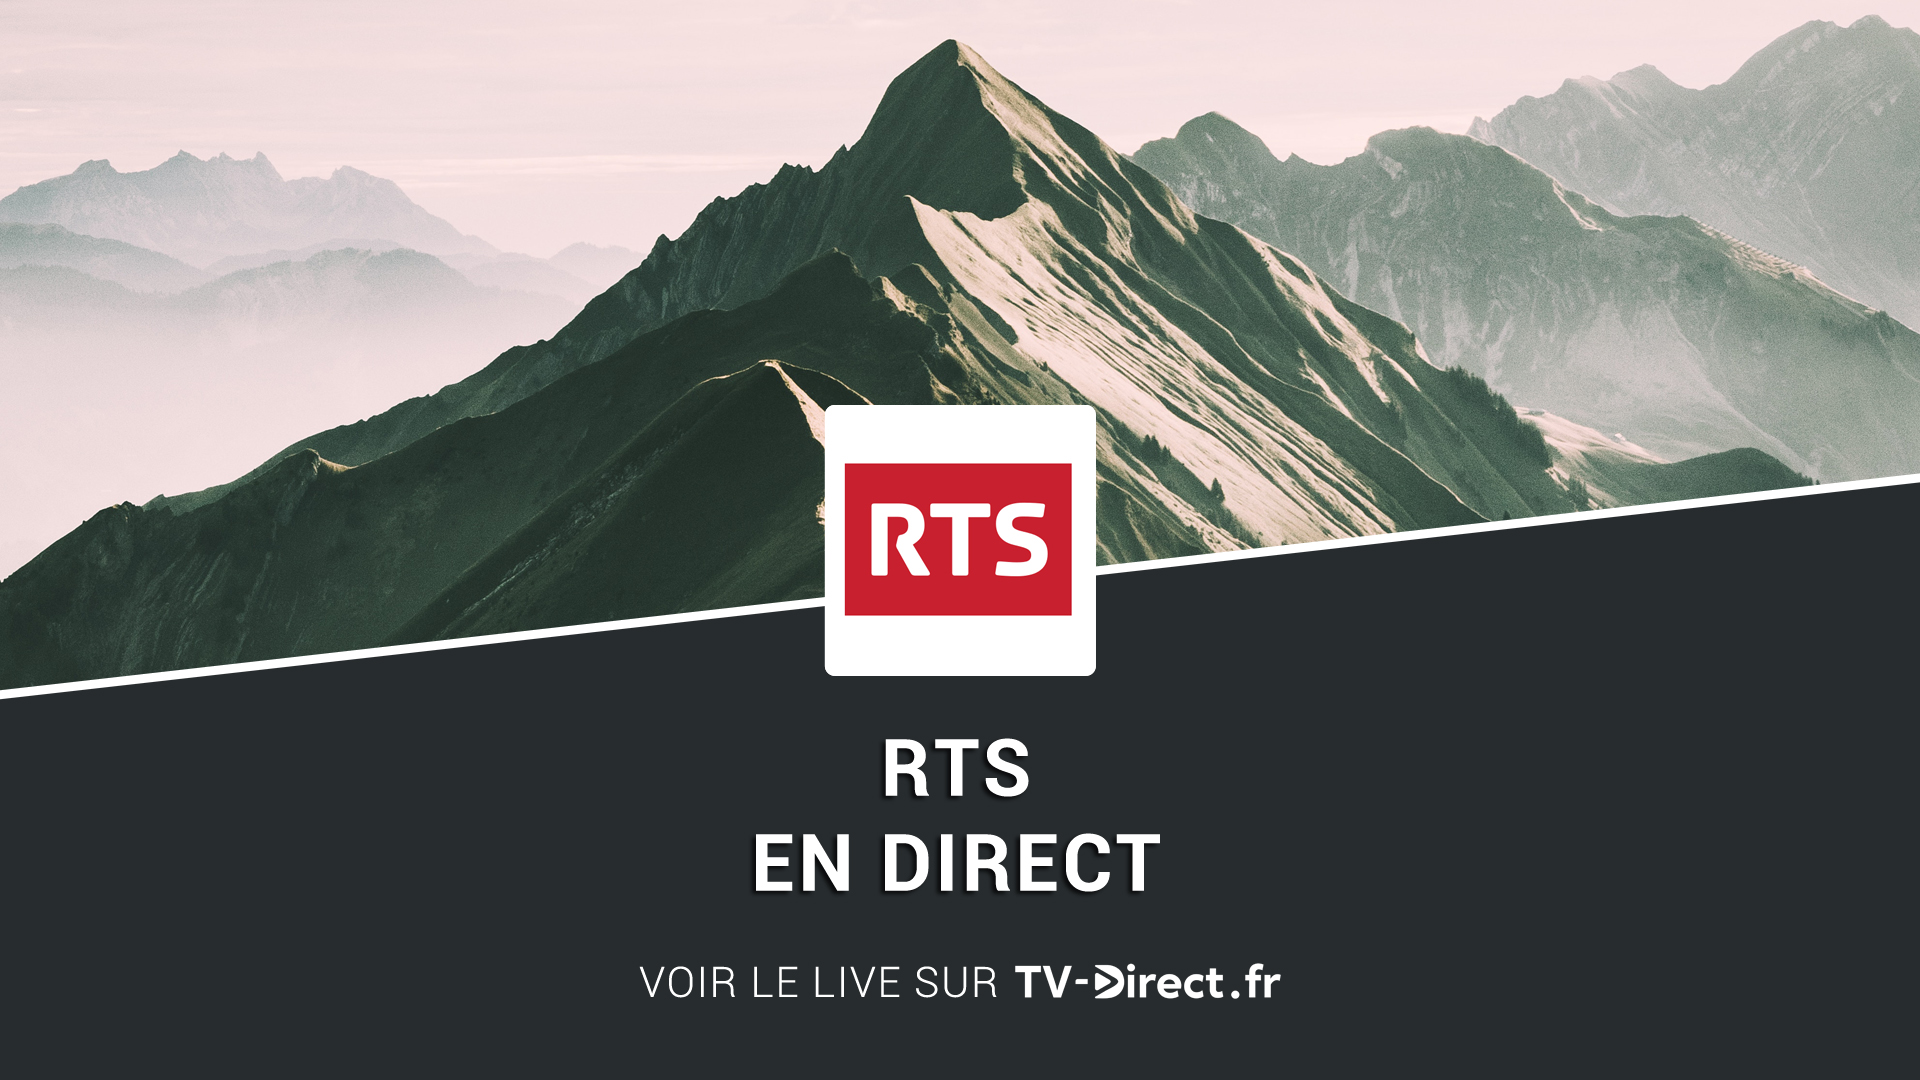 RTS Direct - Regarder RTS en direct live sur internet